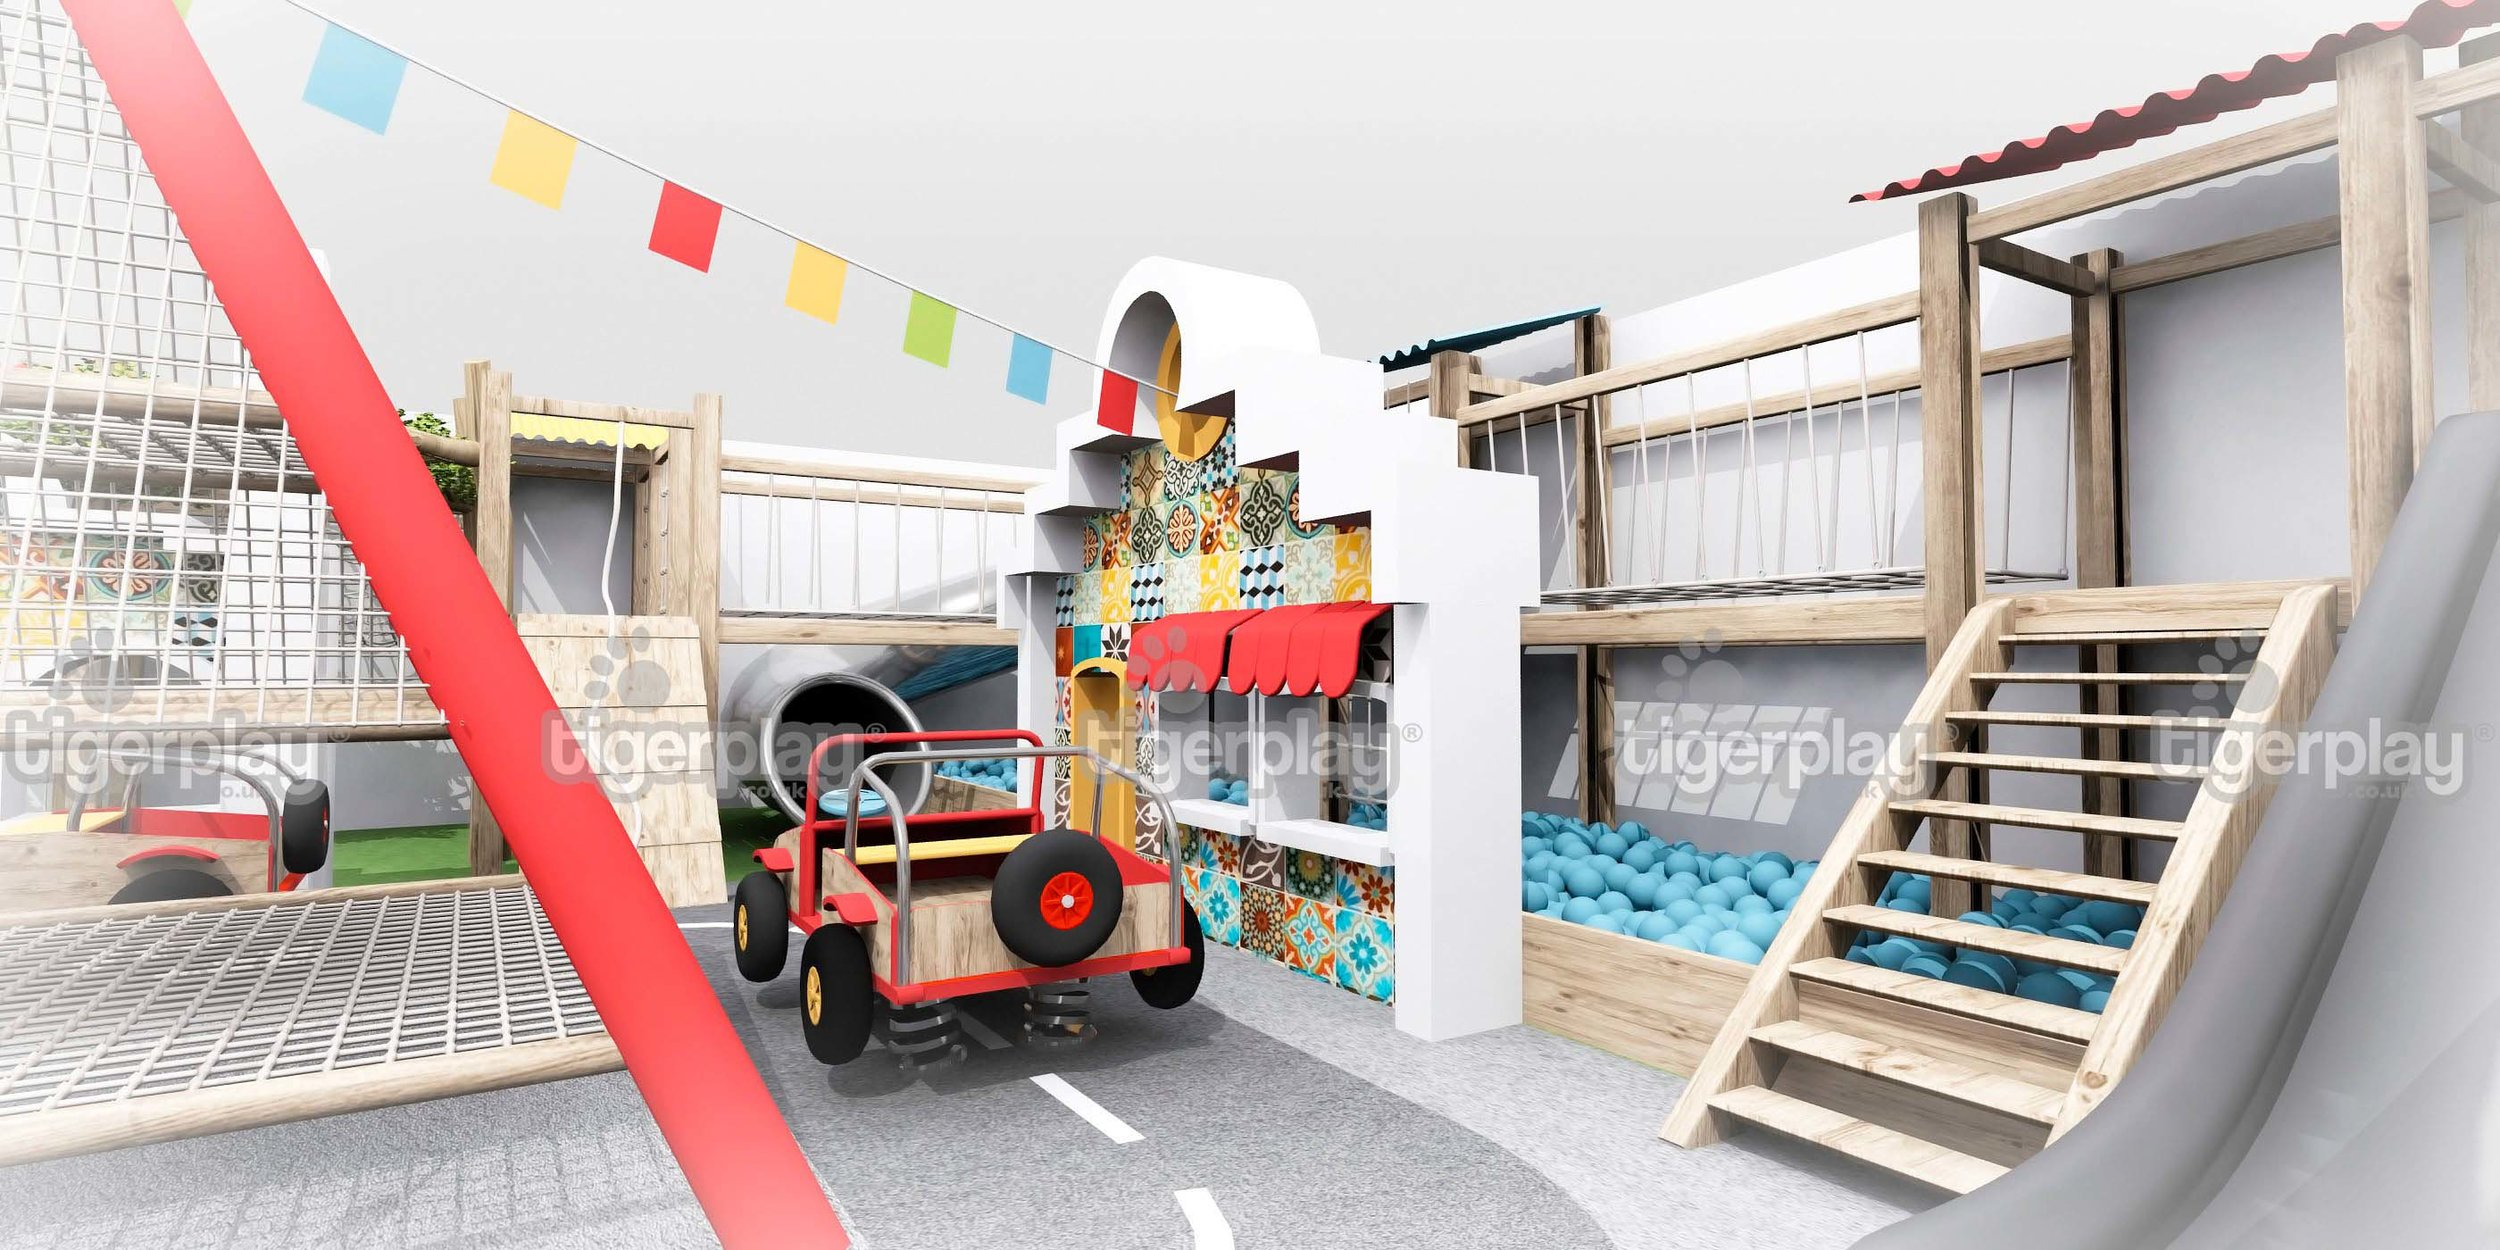 Tigerplay_Angel Court -  Play Area_V1-9.jpg